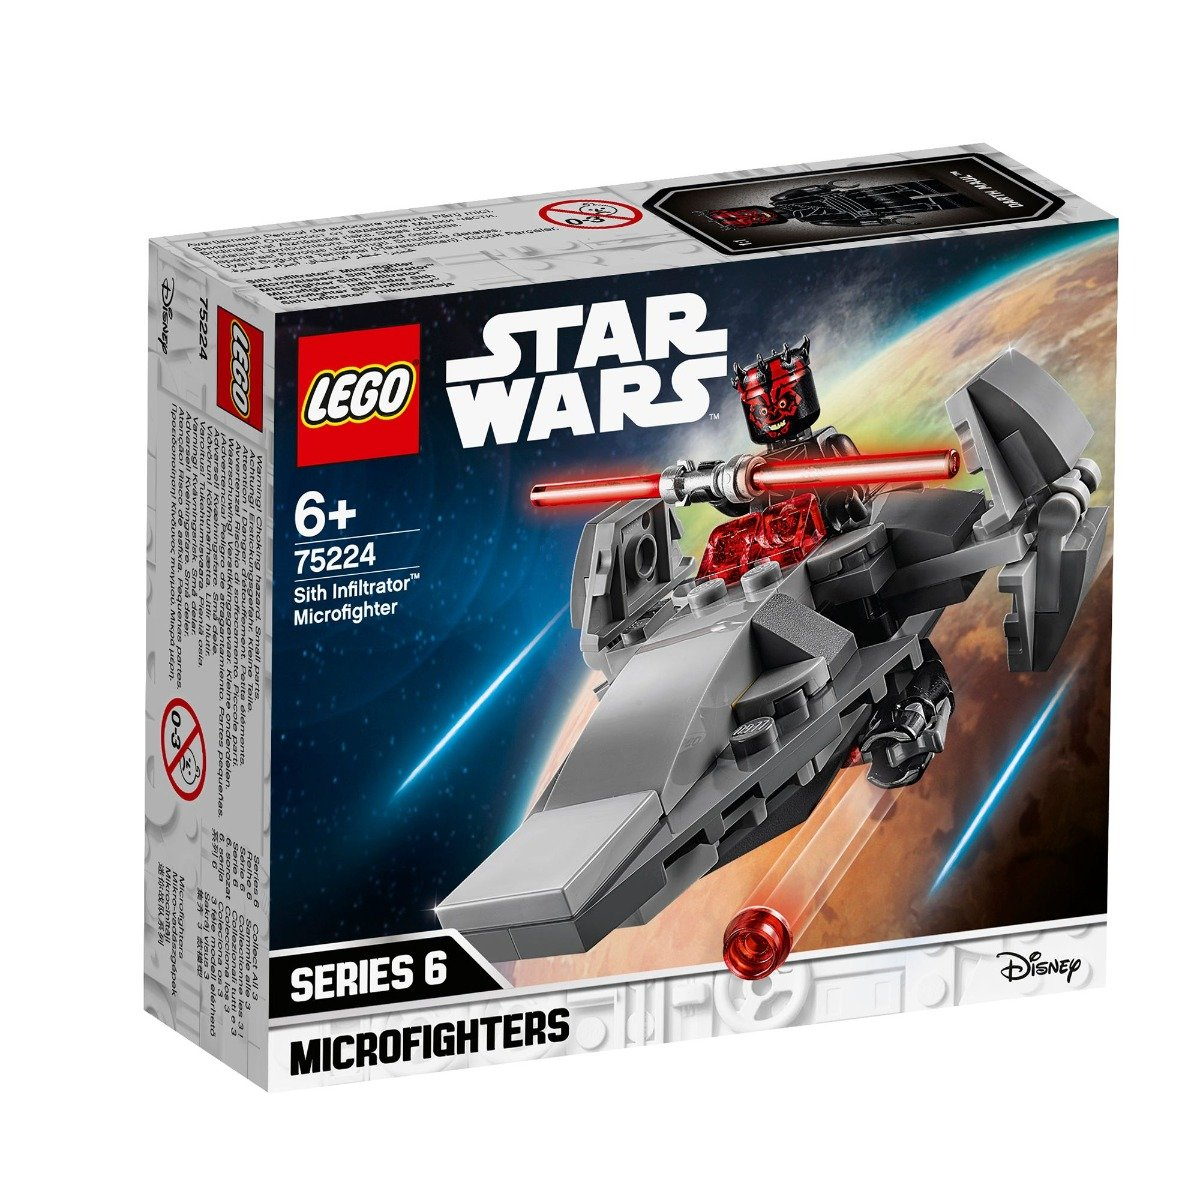 LEGO® Star Wars™ - Sith Infiltrator™ Microfighter (75224)